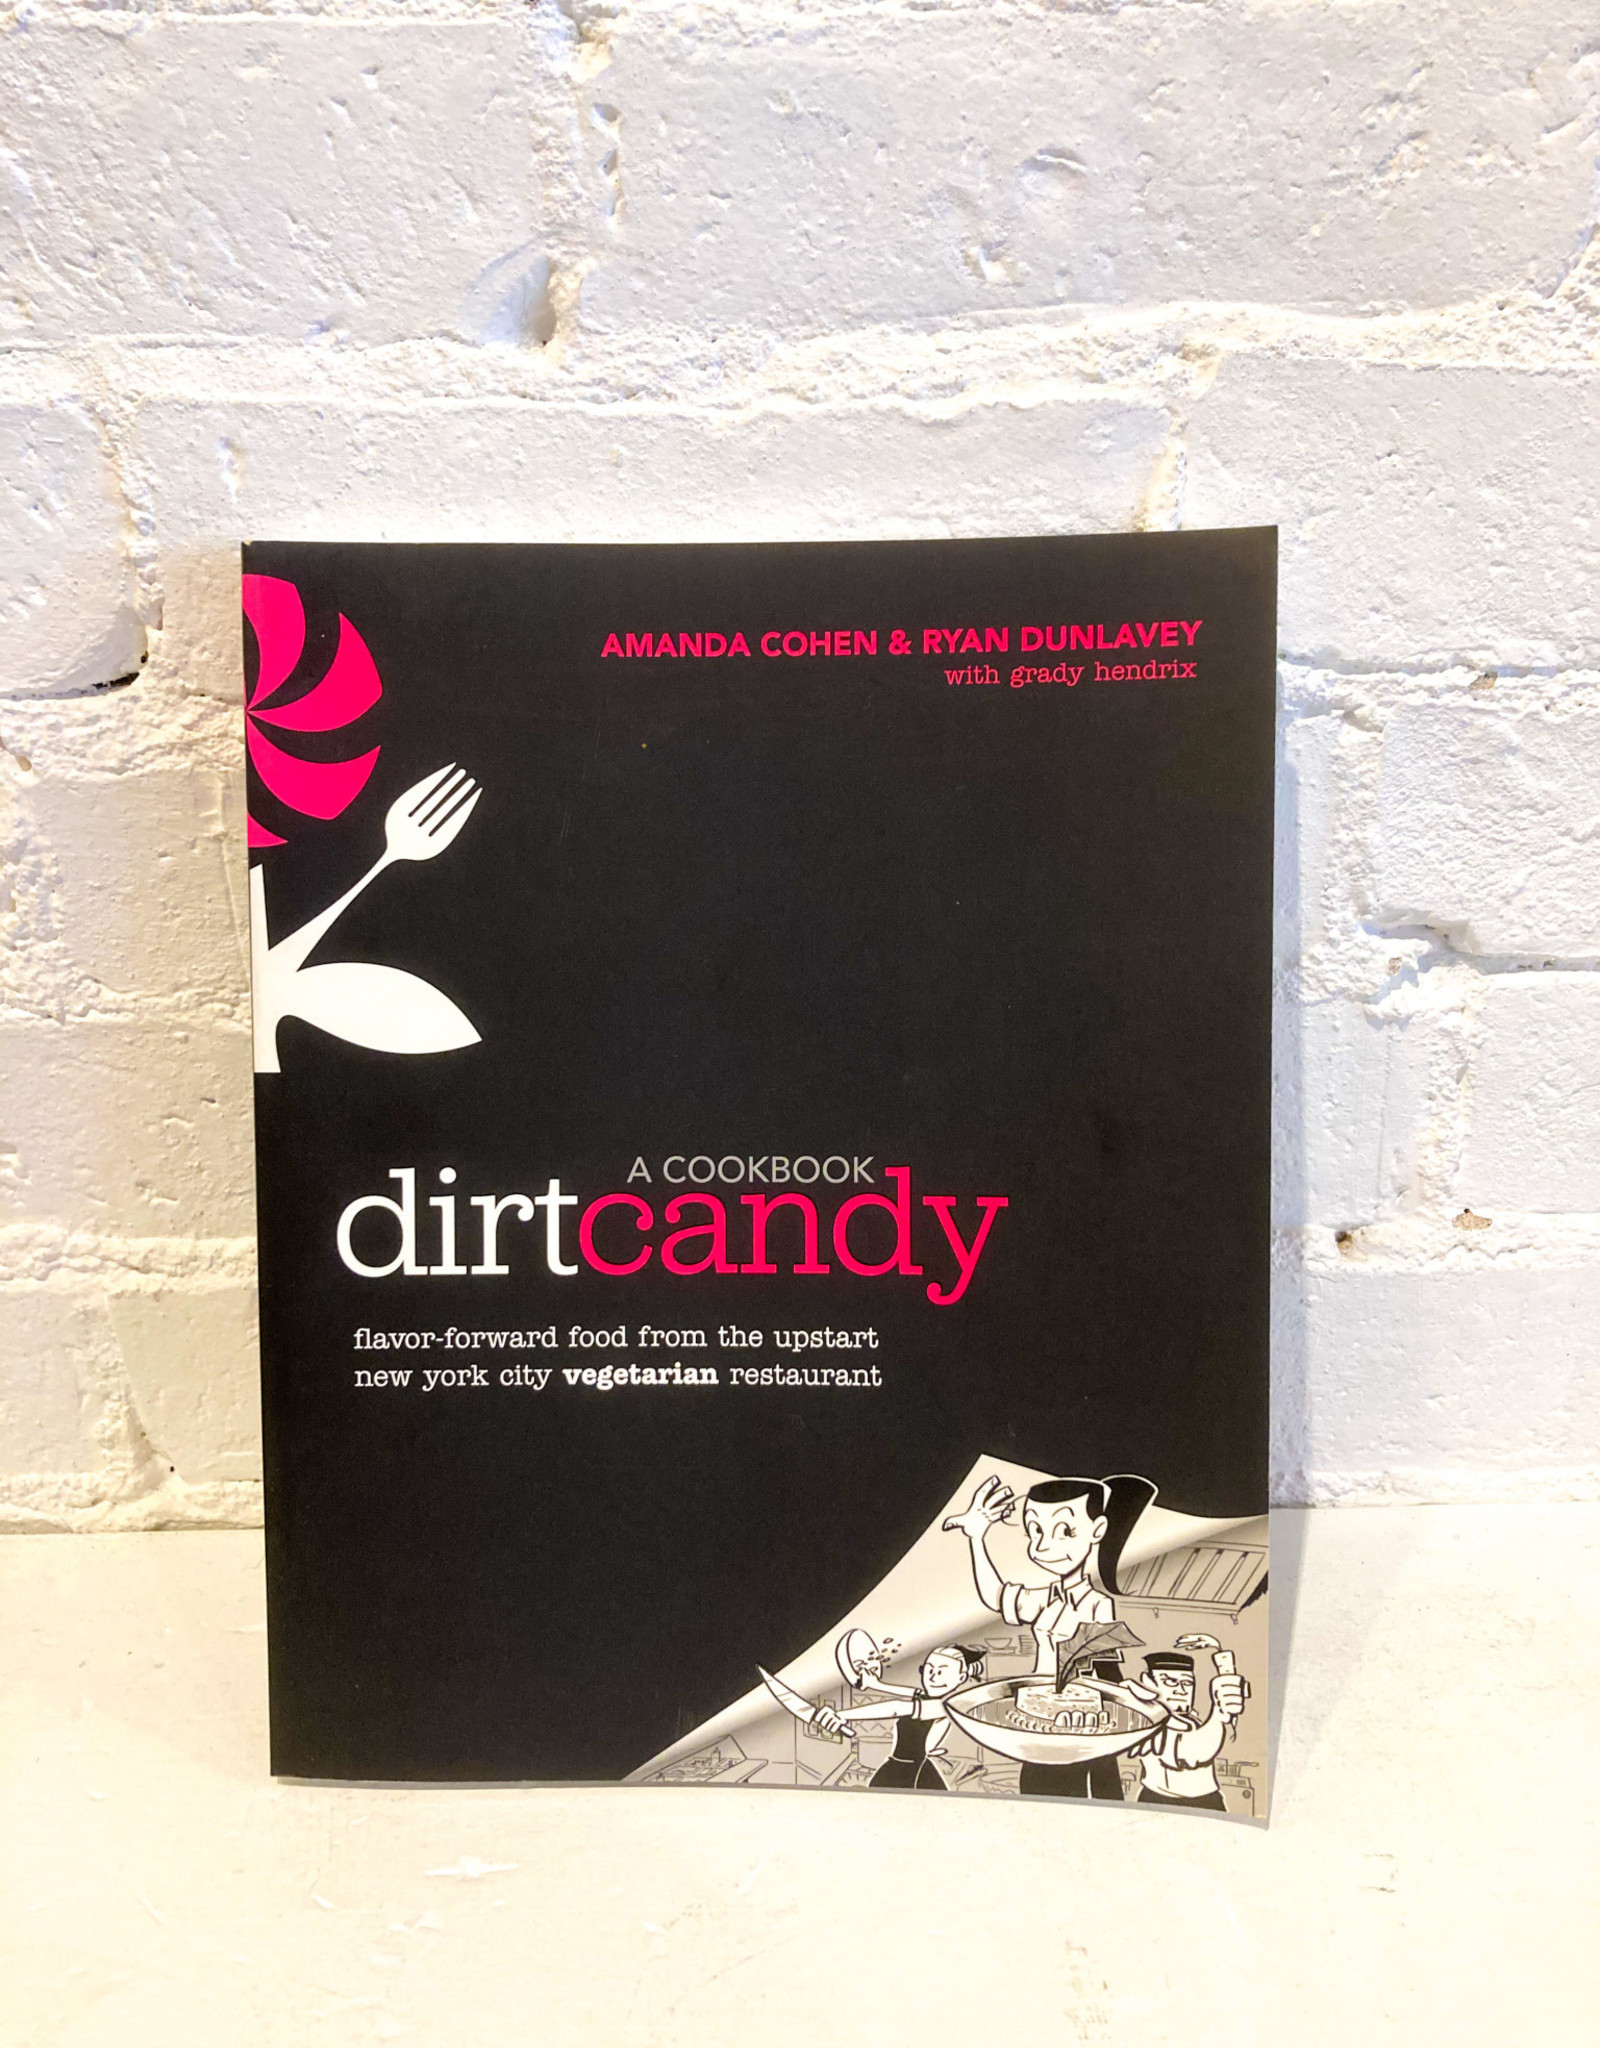 Dirt Candy: A Cookbook by Amanda Cohen & Ryan Dunlavey with Grady Hendrix